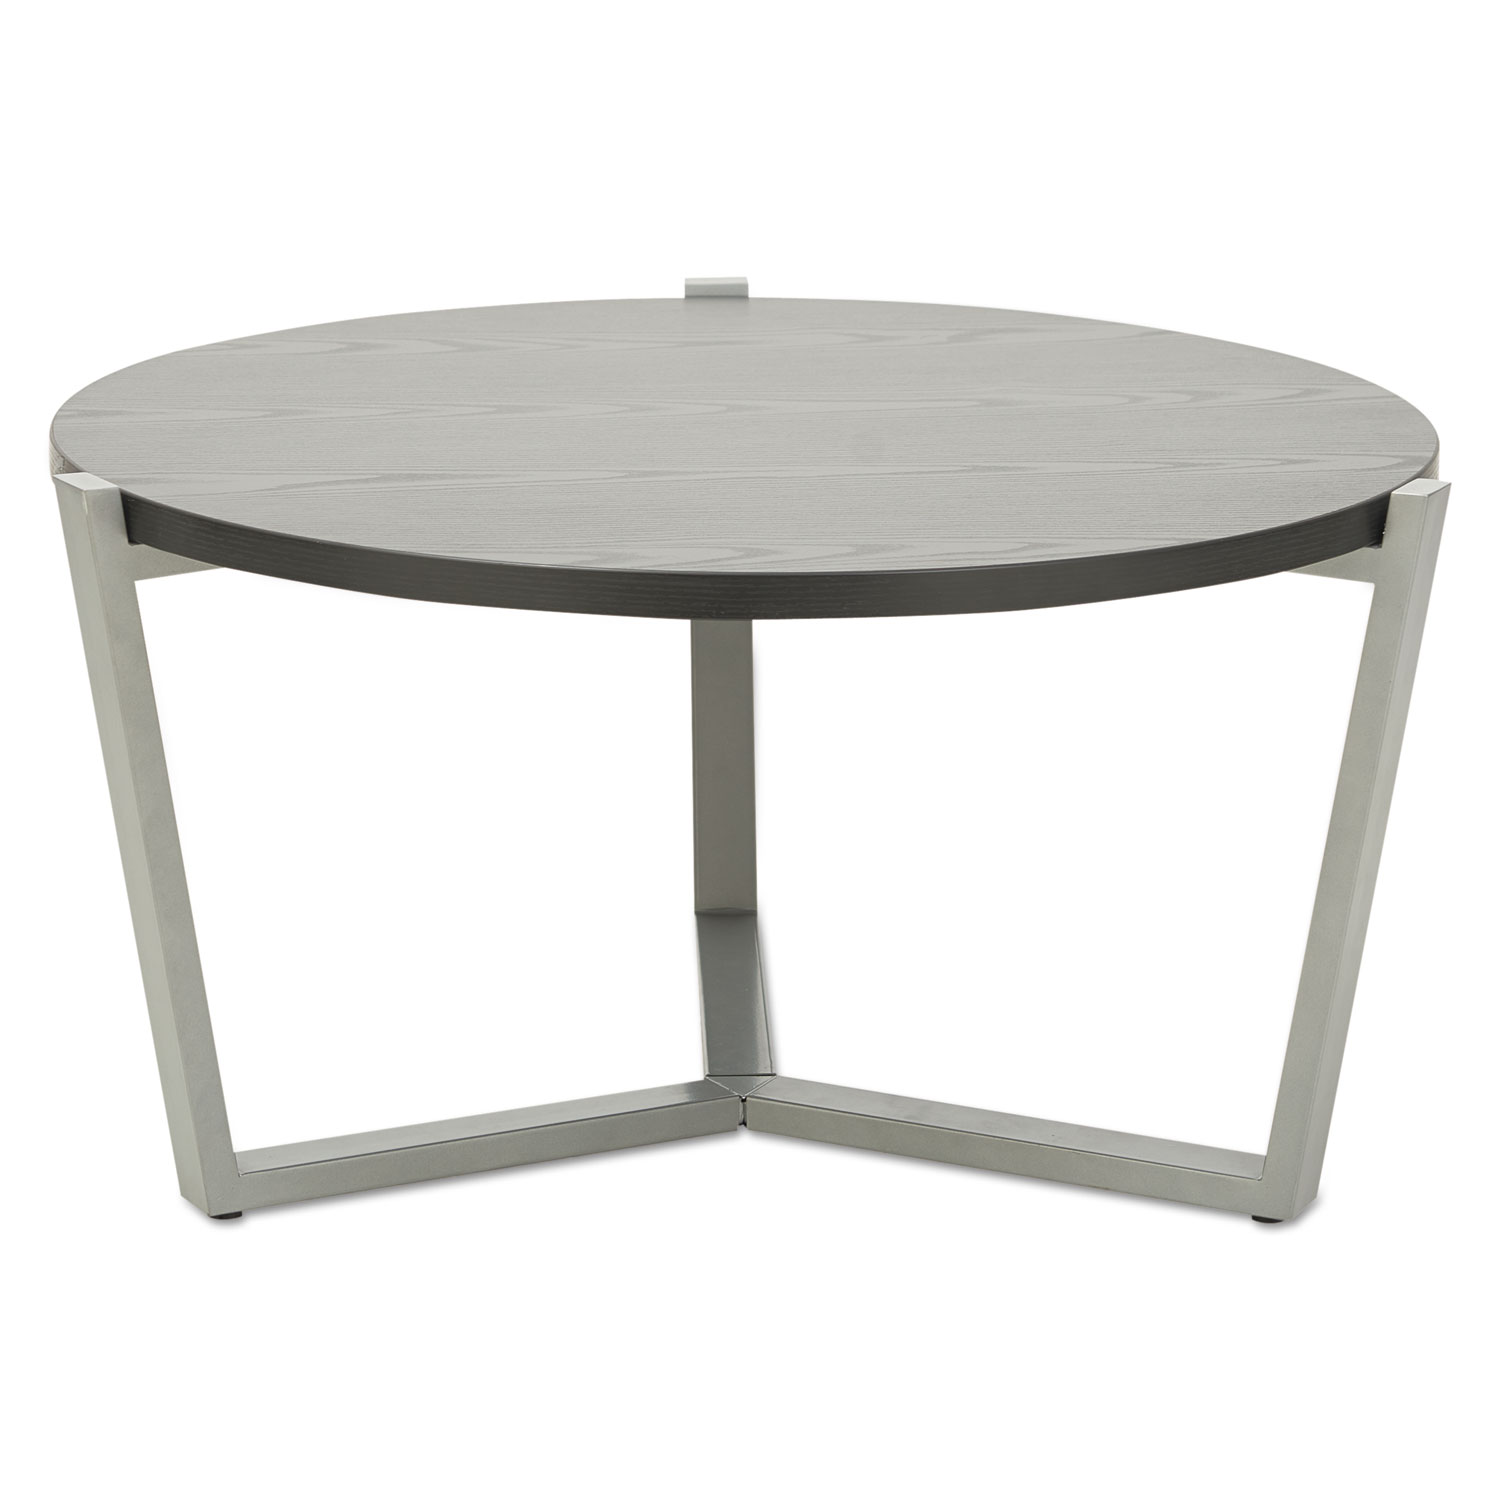 Round Occasional Coffee Table 29 3 8 Dia X 15 1 2h Black Silver